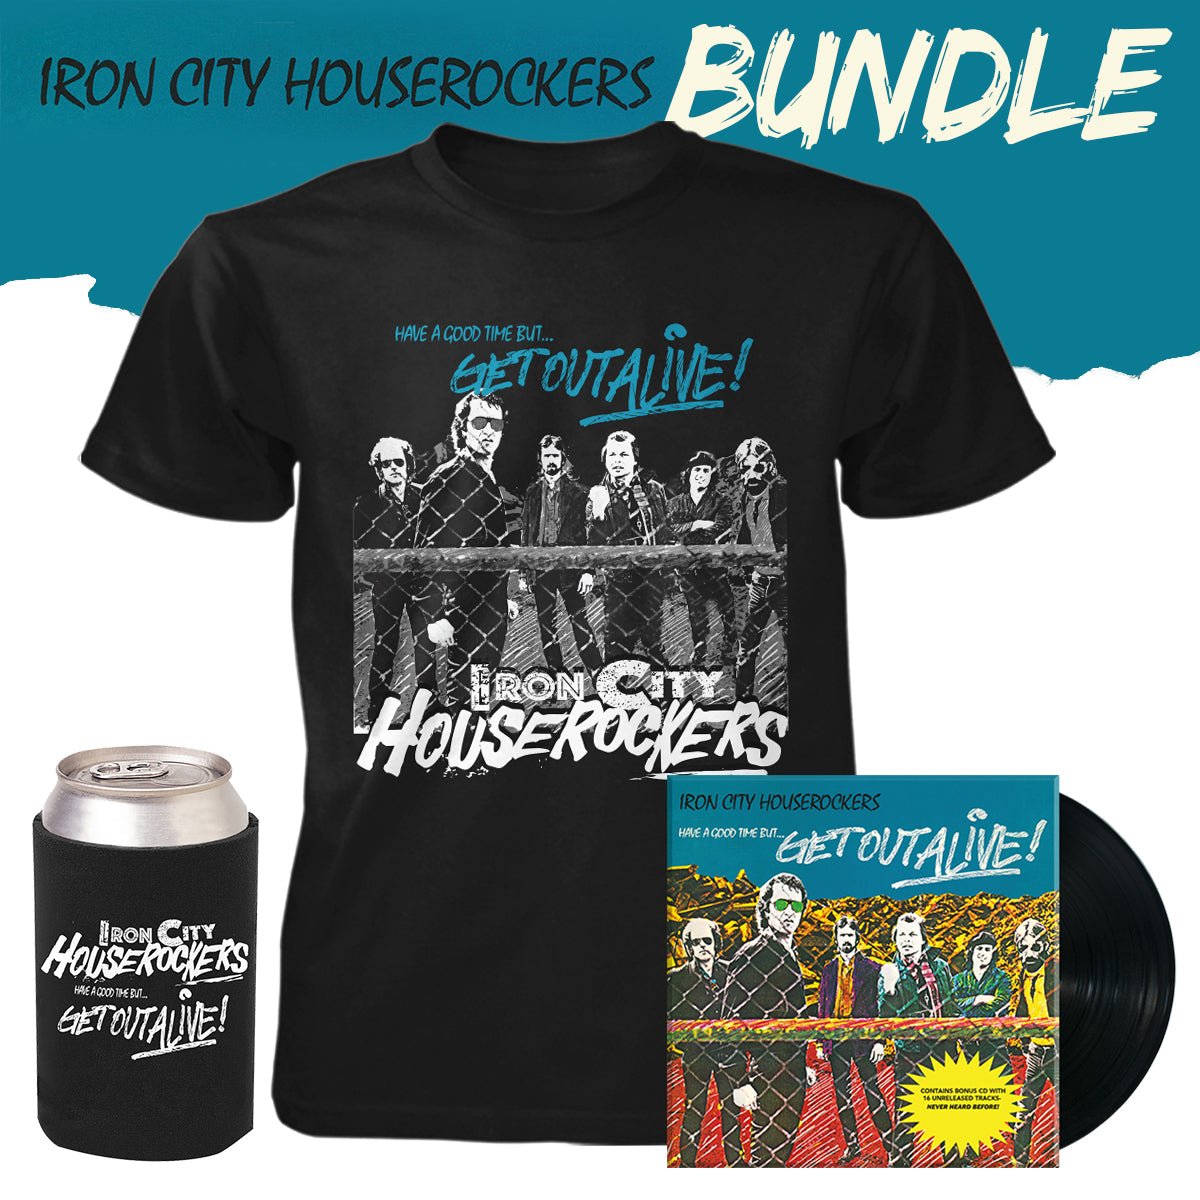 Iron City Houserockers Bundle - Vinyl